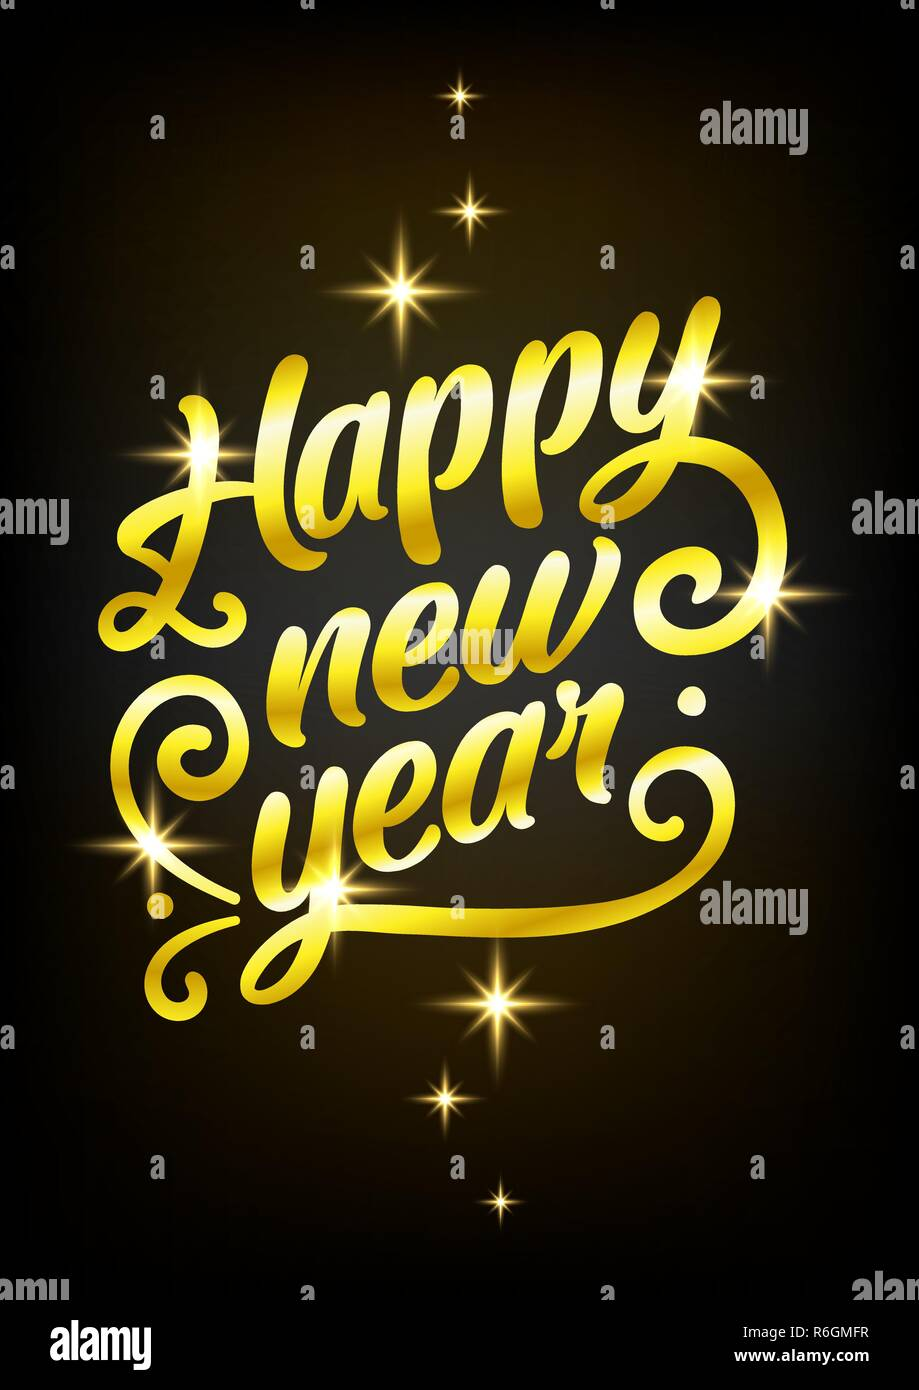 Golden Happy New Year sign 2019 Holiday Vector Illustration. Shiny Gold Lettering Composition With Sparkles - Stock Image